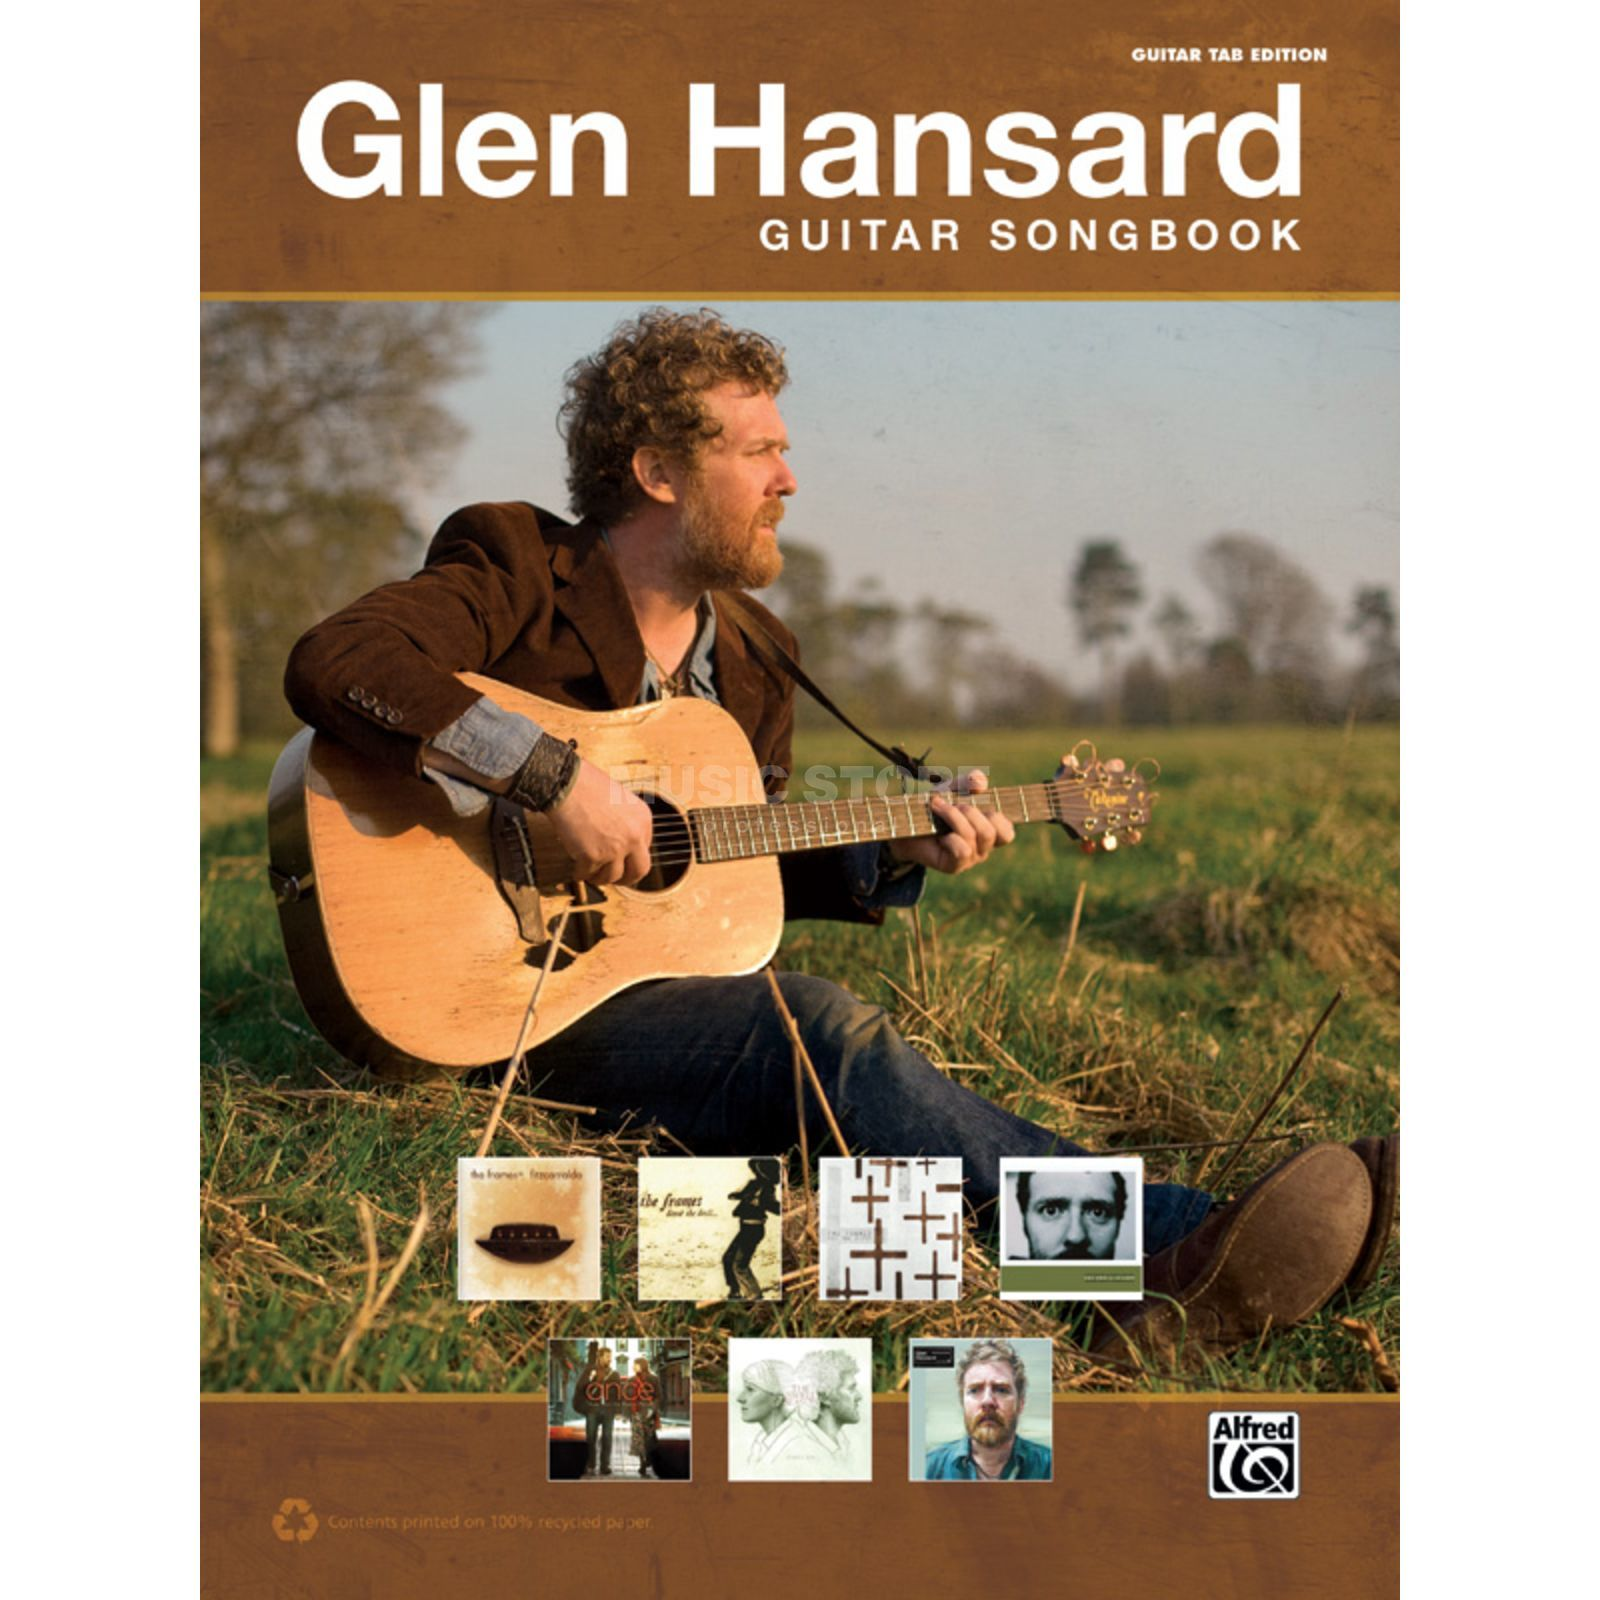 Alfred Music The Glen Hansard Guitar Songbook Produktbild